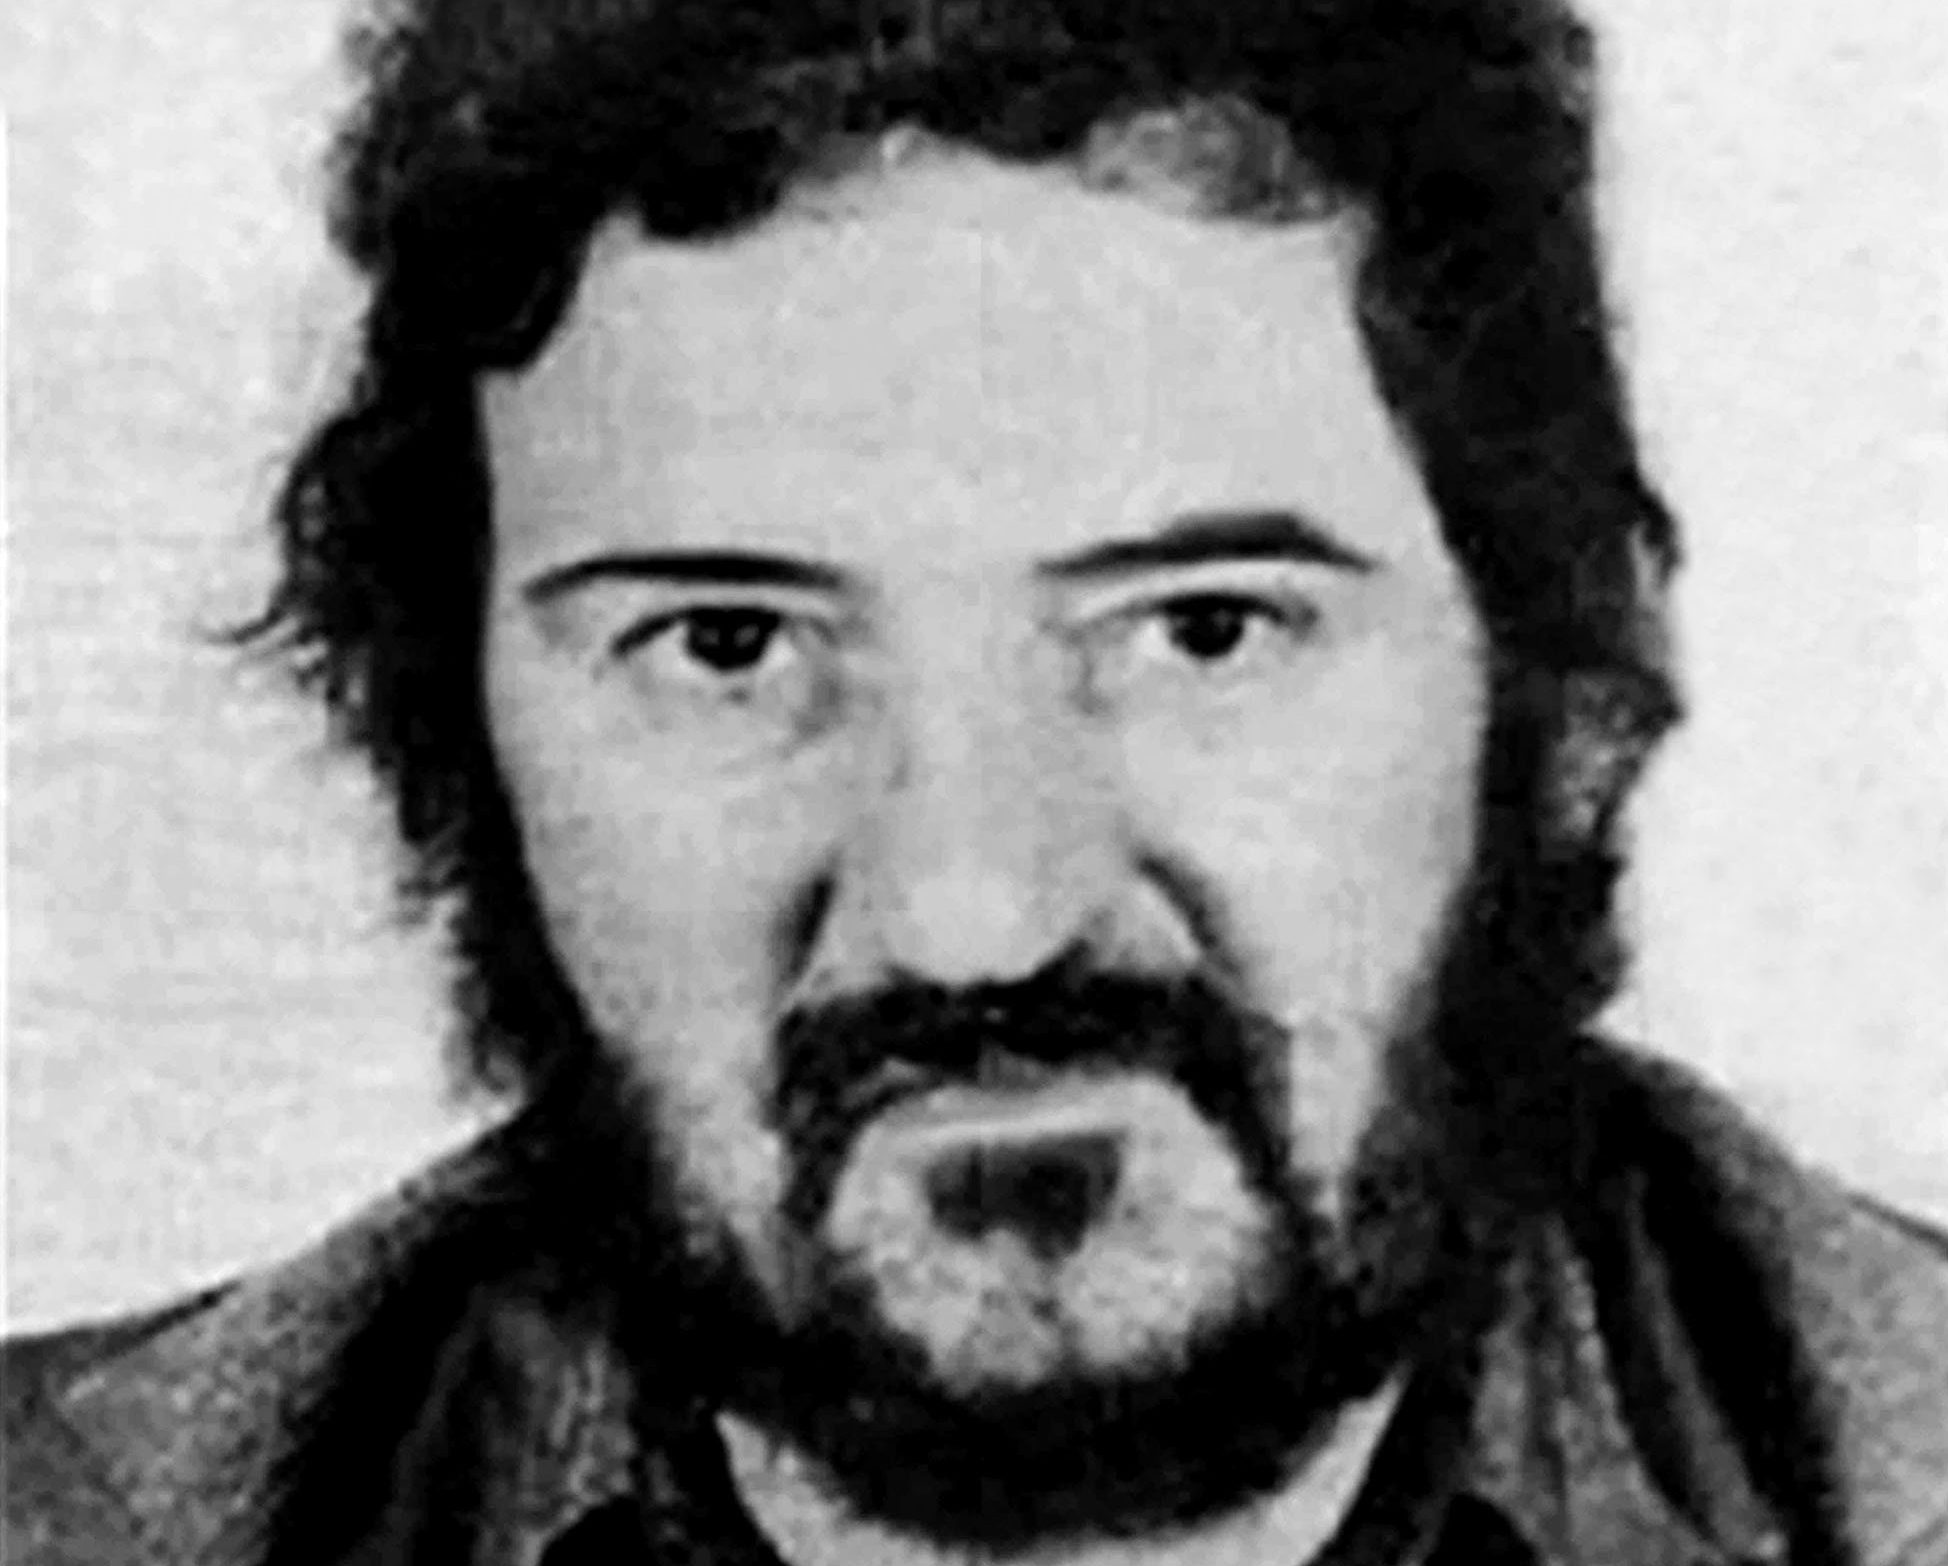 The Yorkshire Ripper Files: A Very British Crime Story – everything you need to know